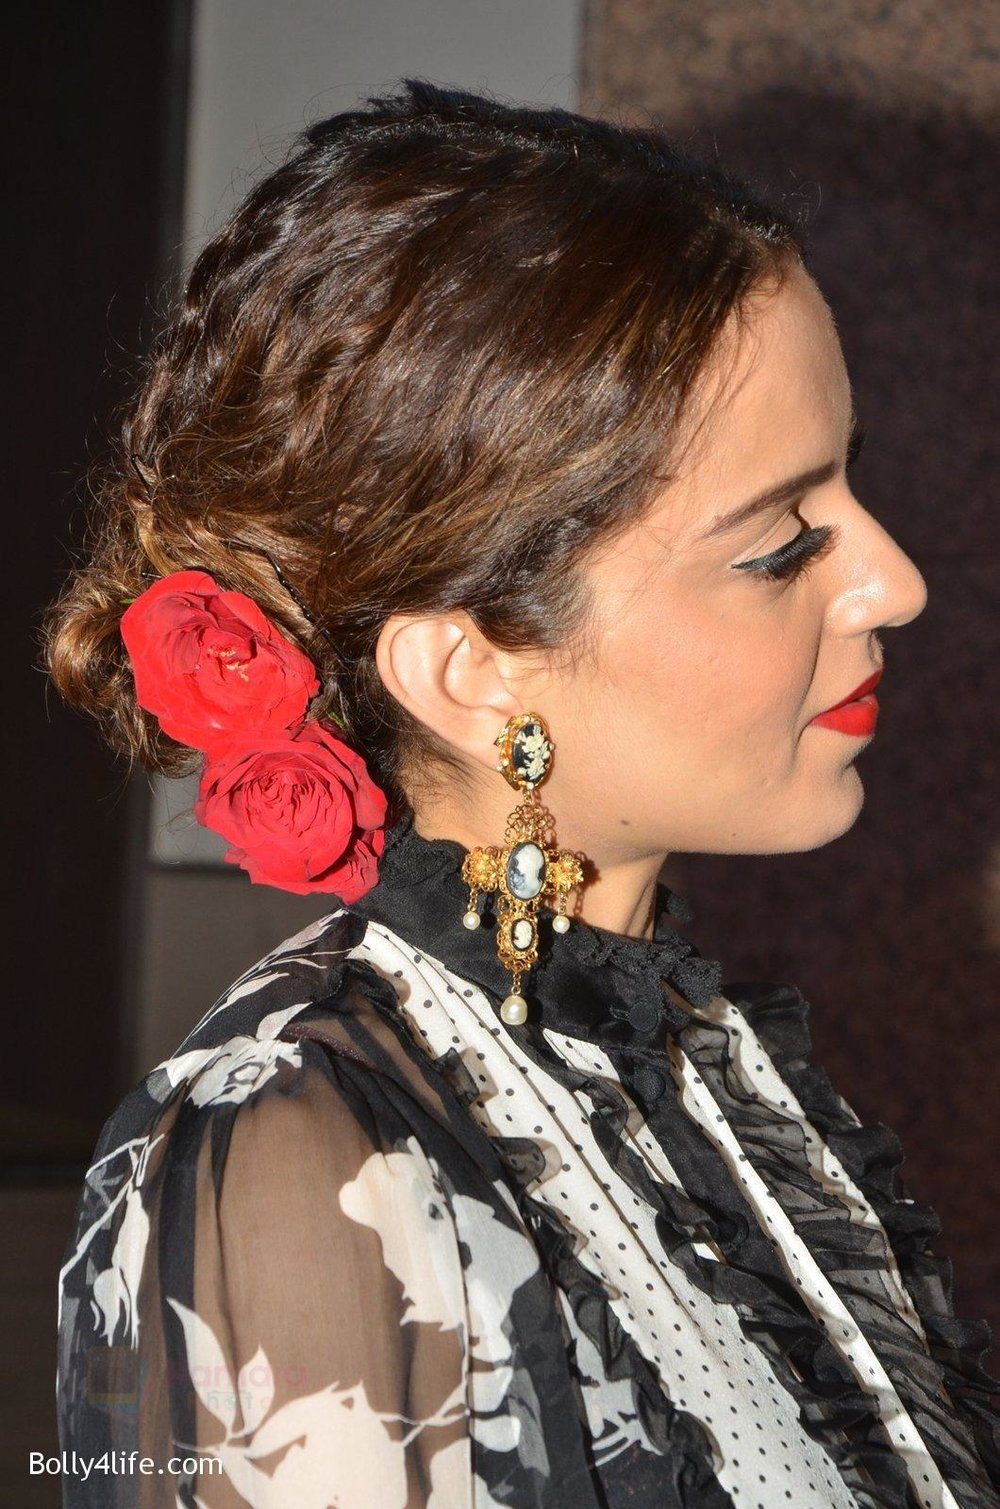 Kangana-Ranaut-at-Jio-Mami-fest-opening-on-29th-Sept-2016-10.jpg